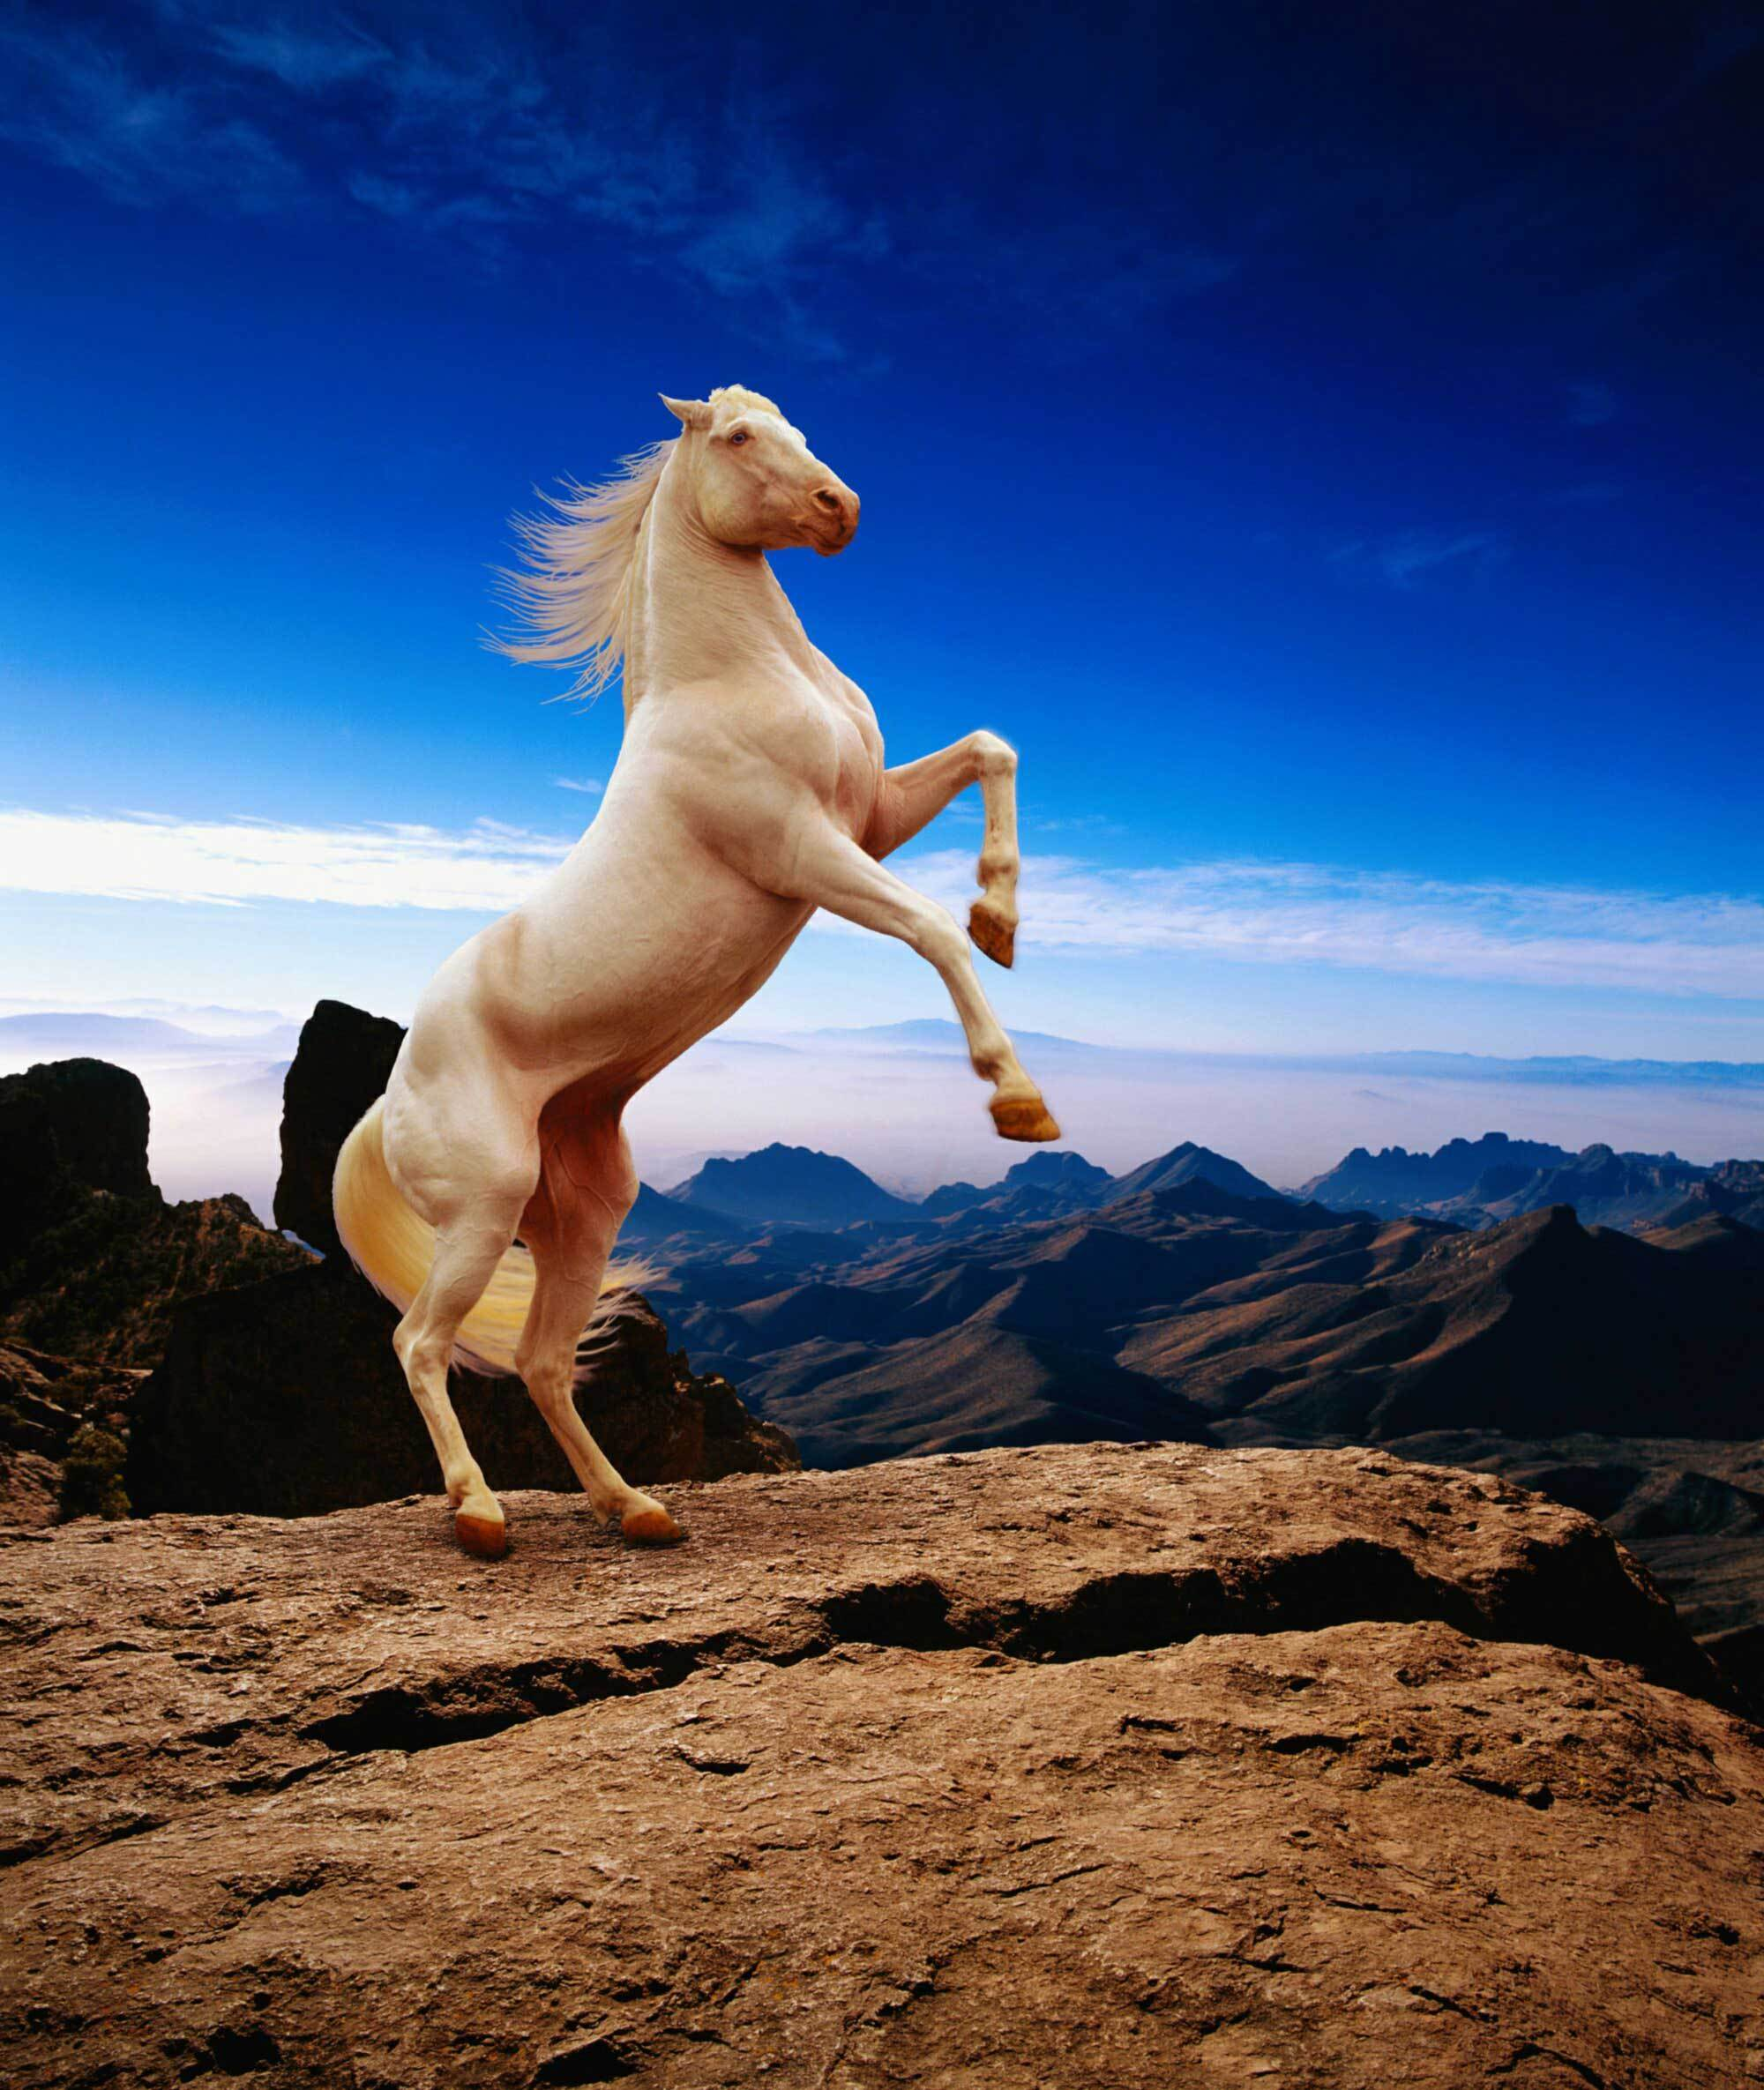 10496 download wallpaper Animals, Horses screensavers and pictures for free